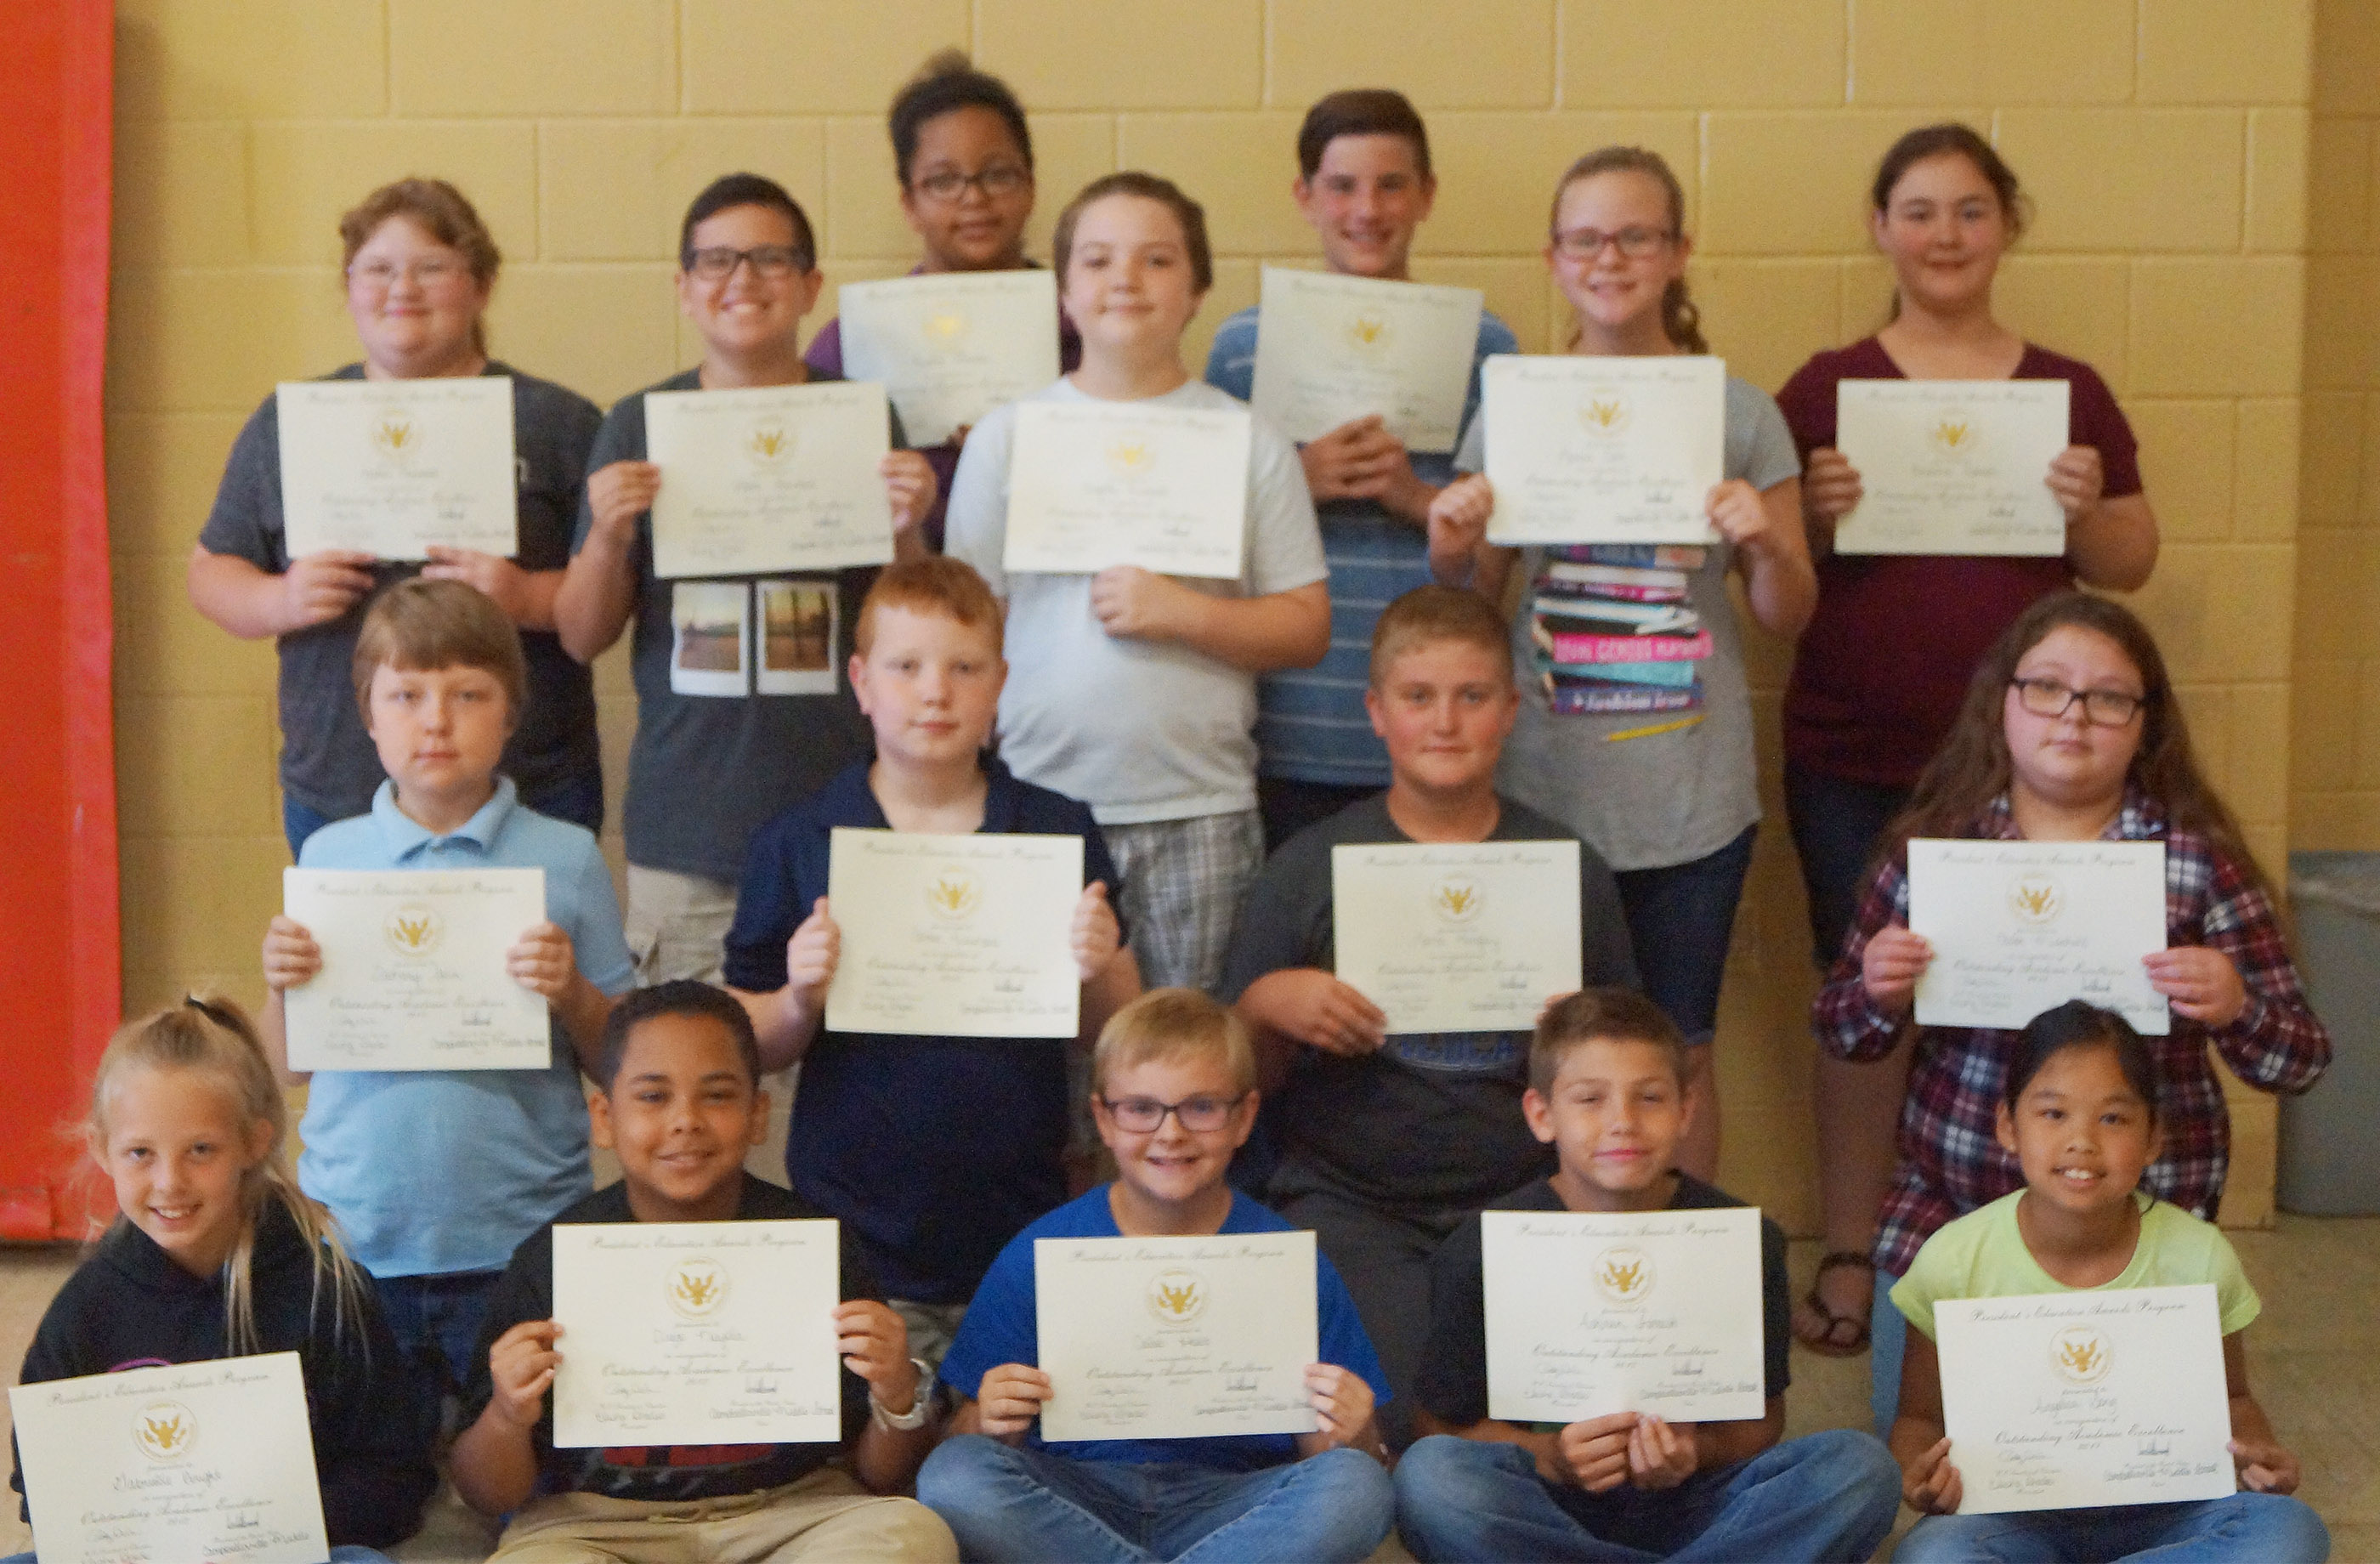 Fifth-grade students receiving the president's award for educational excellence are, from left, front, Gabby Bright, Diego Noyola, Caleb Holt, Ashtan Forrest and Angelica Seng. Second row, Zachary Akin, Conner Rinehart, Lance Knifley and Chloe Mitchell. Third row, Katlin Rainwater, Chase Lawless, Kayden Birdwell, Karlie Cox and Brianna Dobson. Back, Kiara Graves and Isaac Garrison. Absent from the photo is Ryan Grubbs.